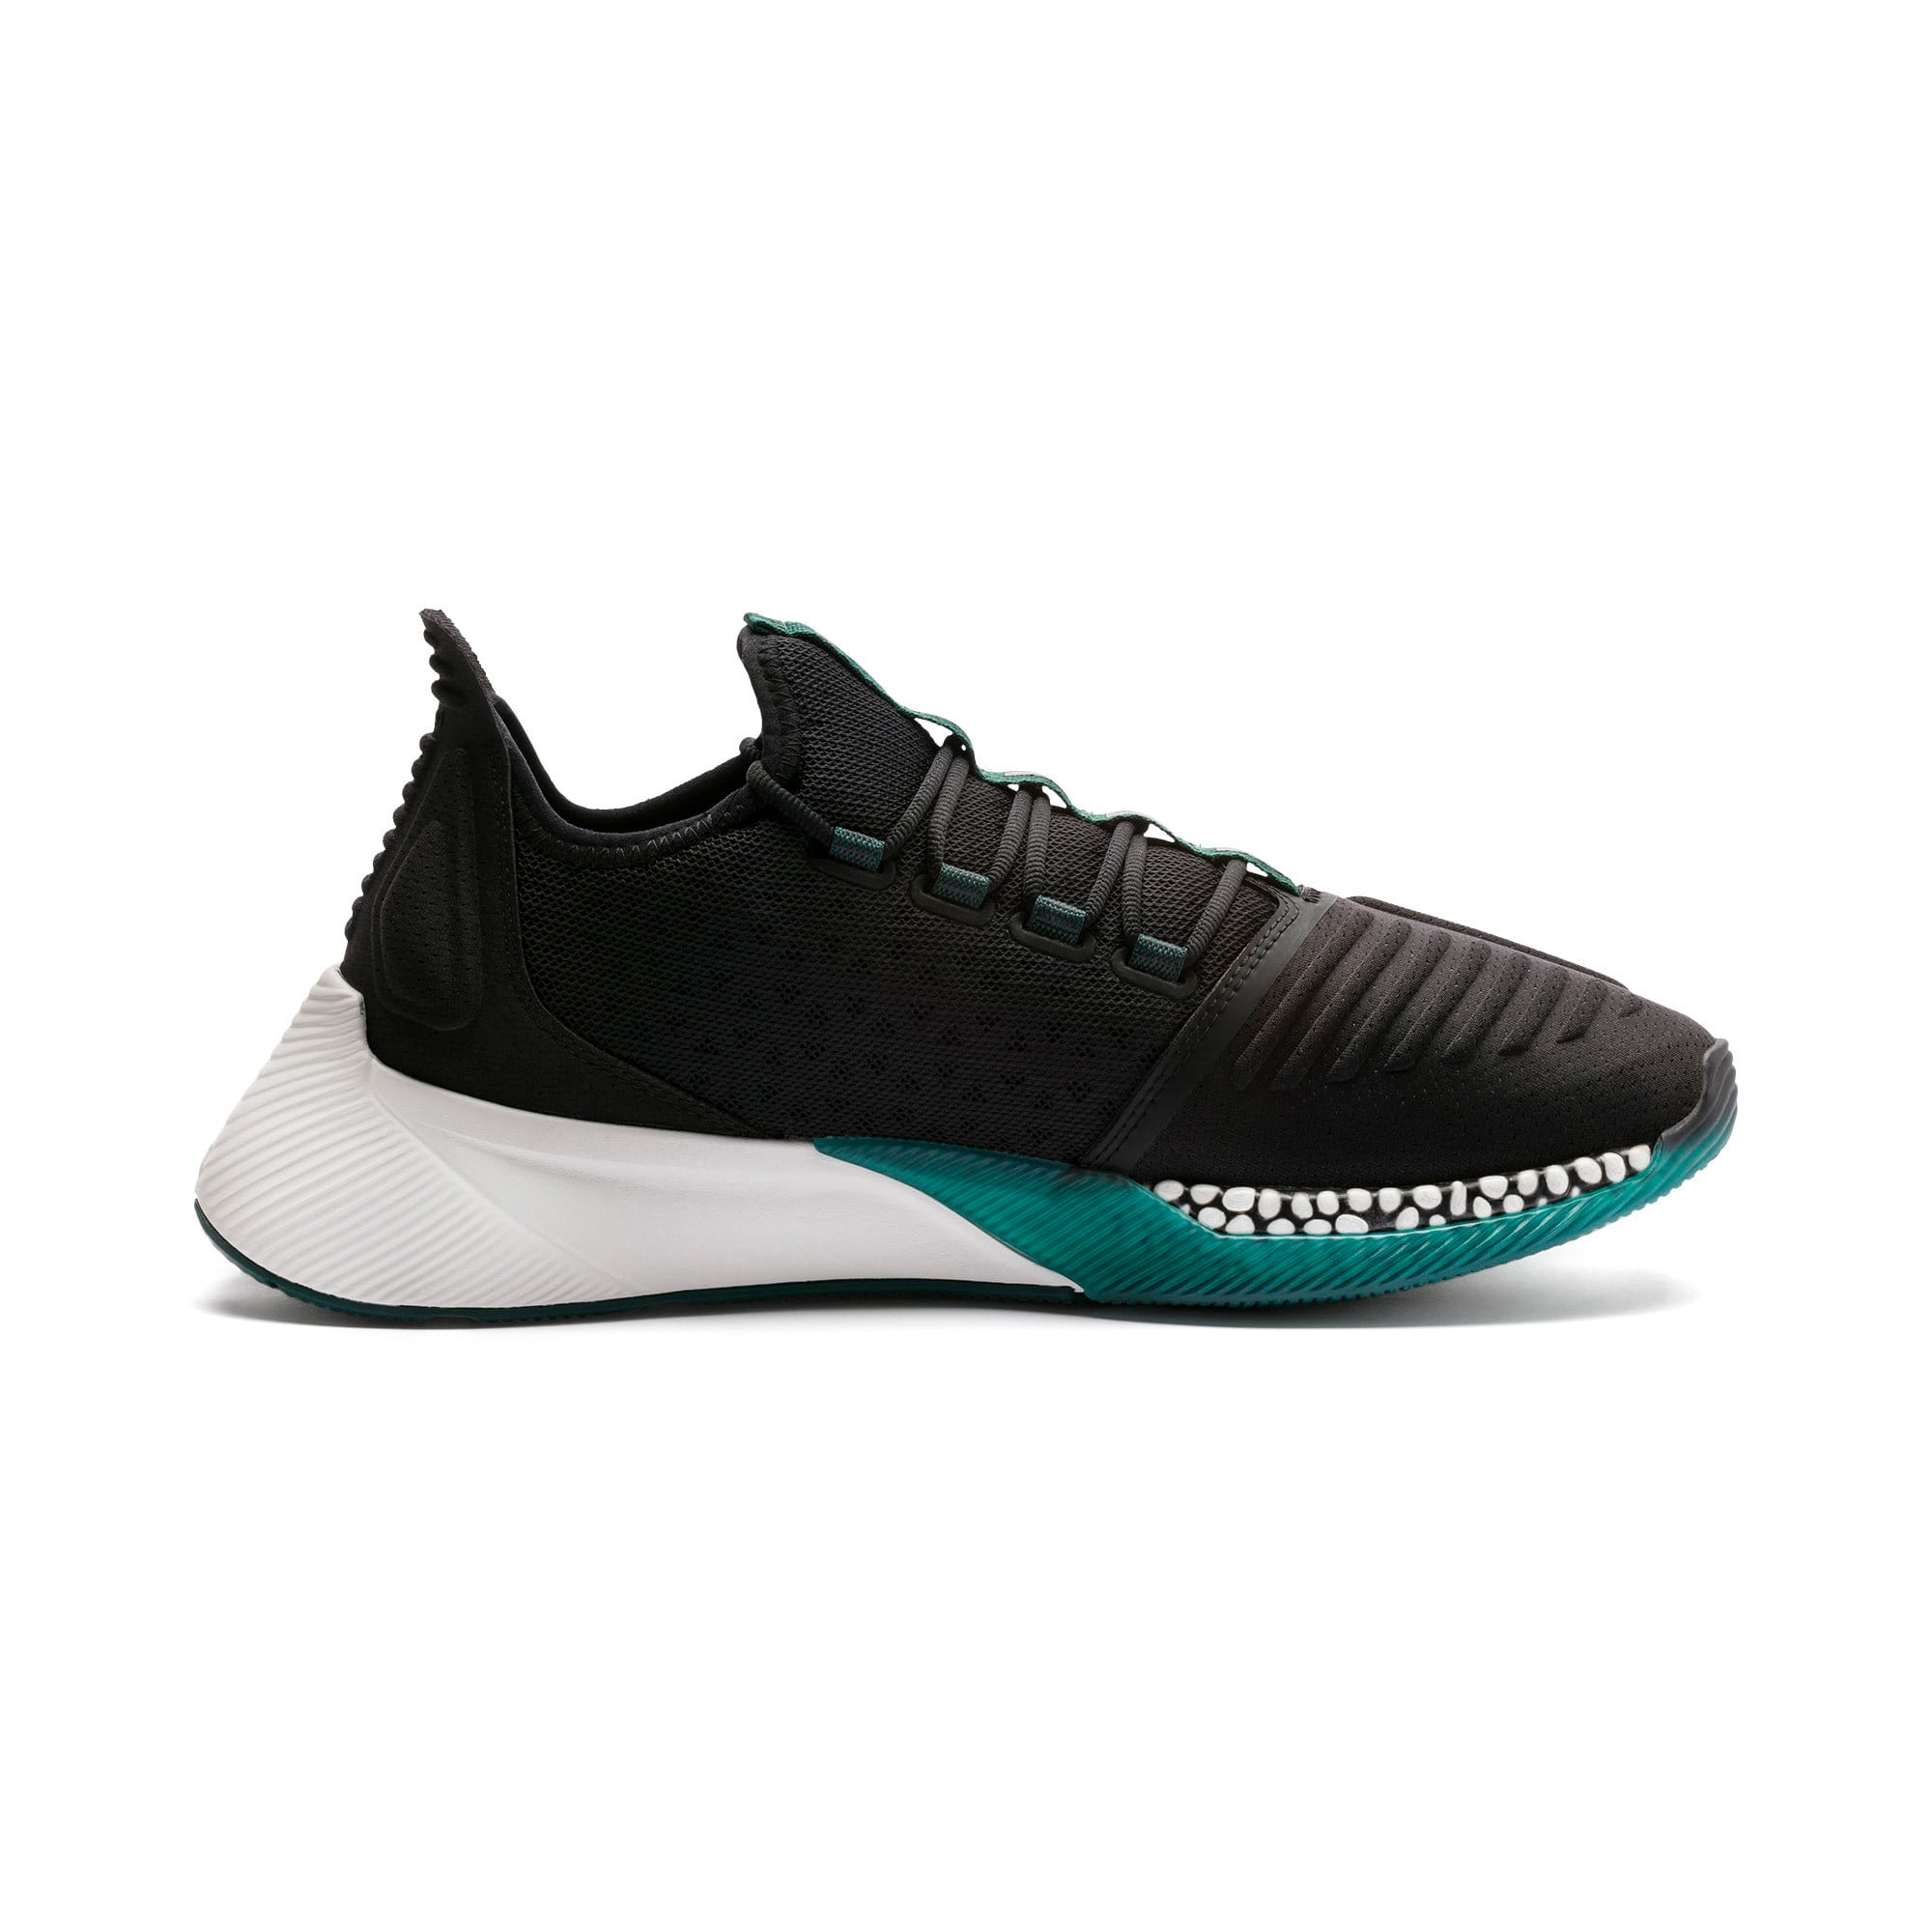 Thumbnail 6 of Chaussure de course Xcelerator, Black-Glacier Gray-Ponderosa, medium